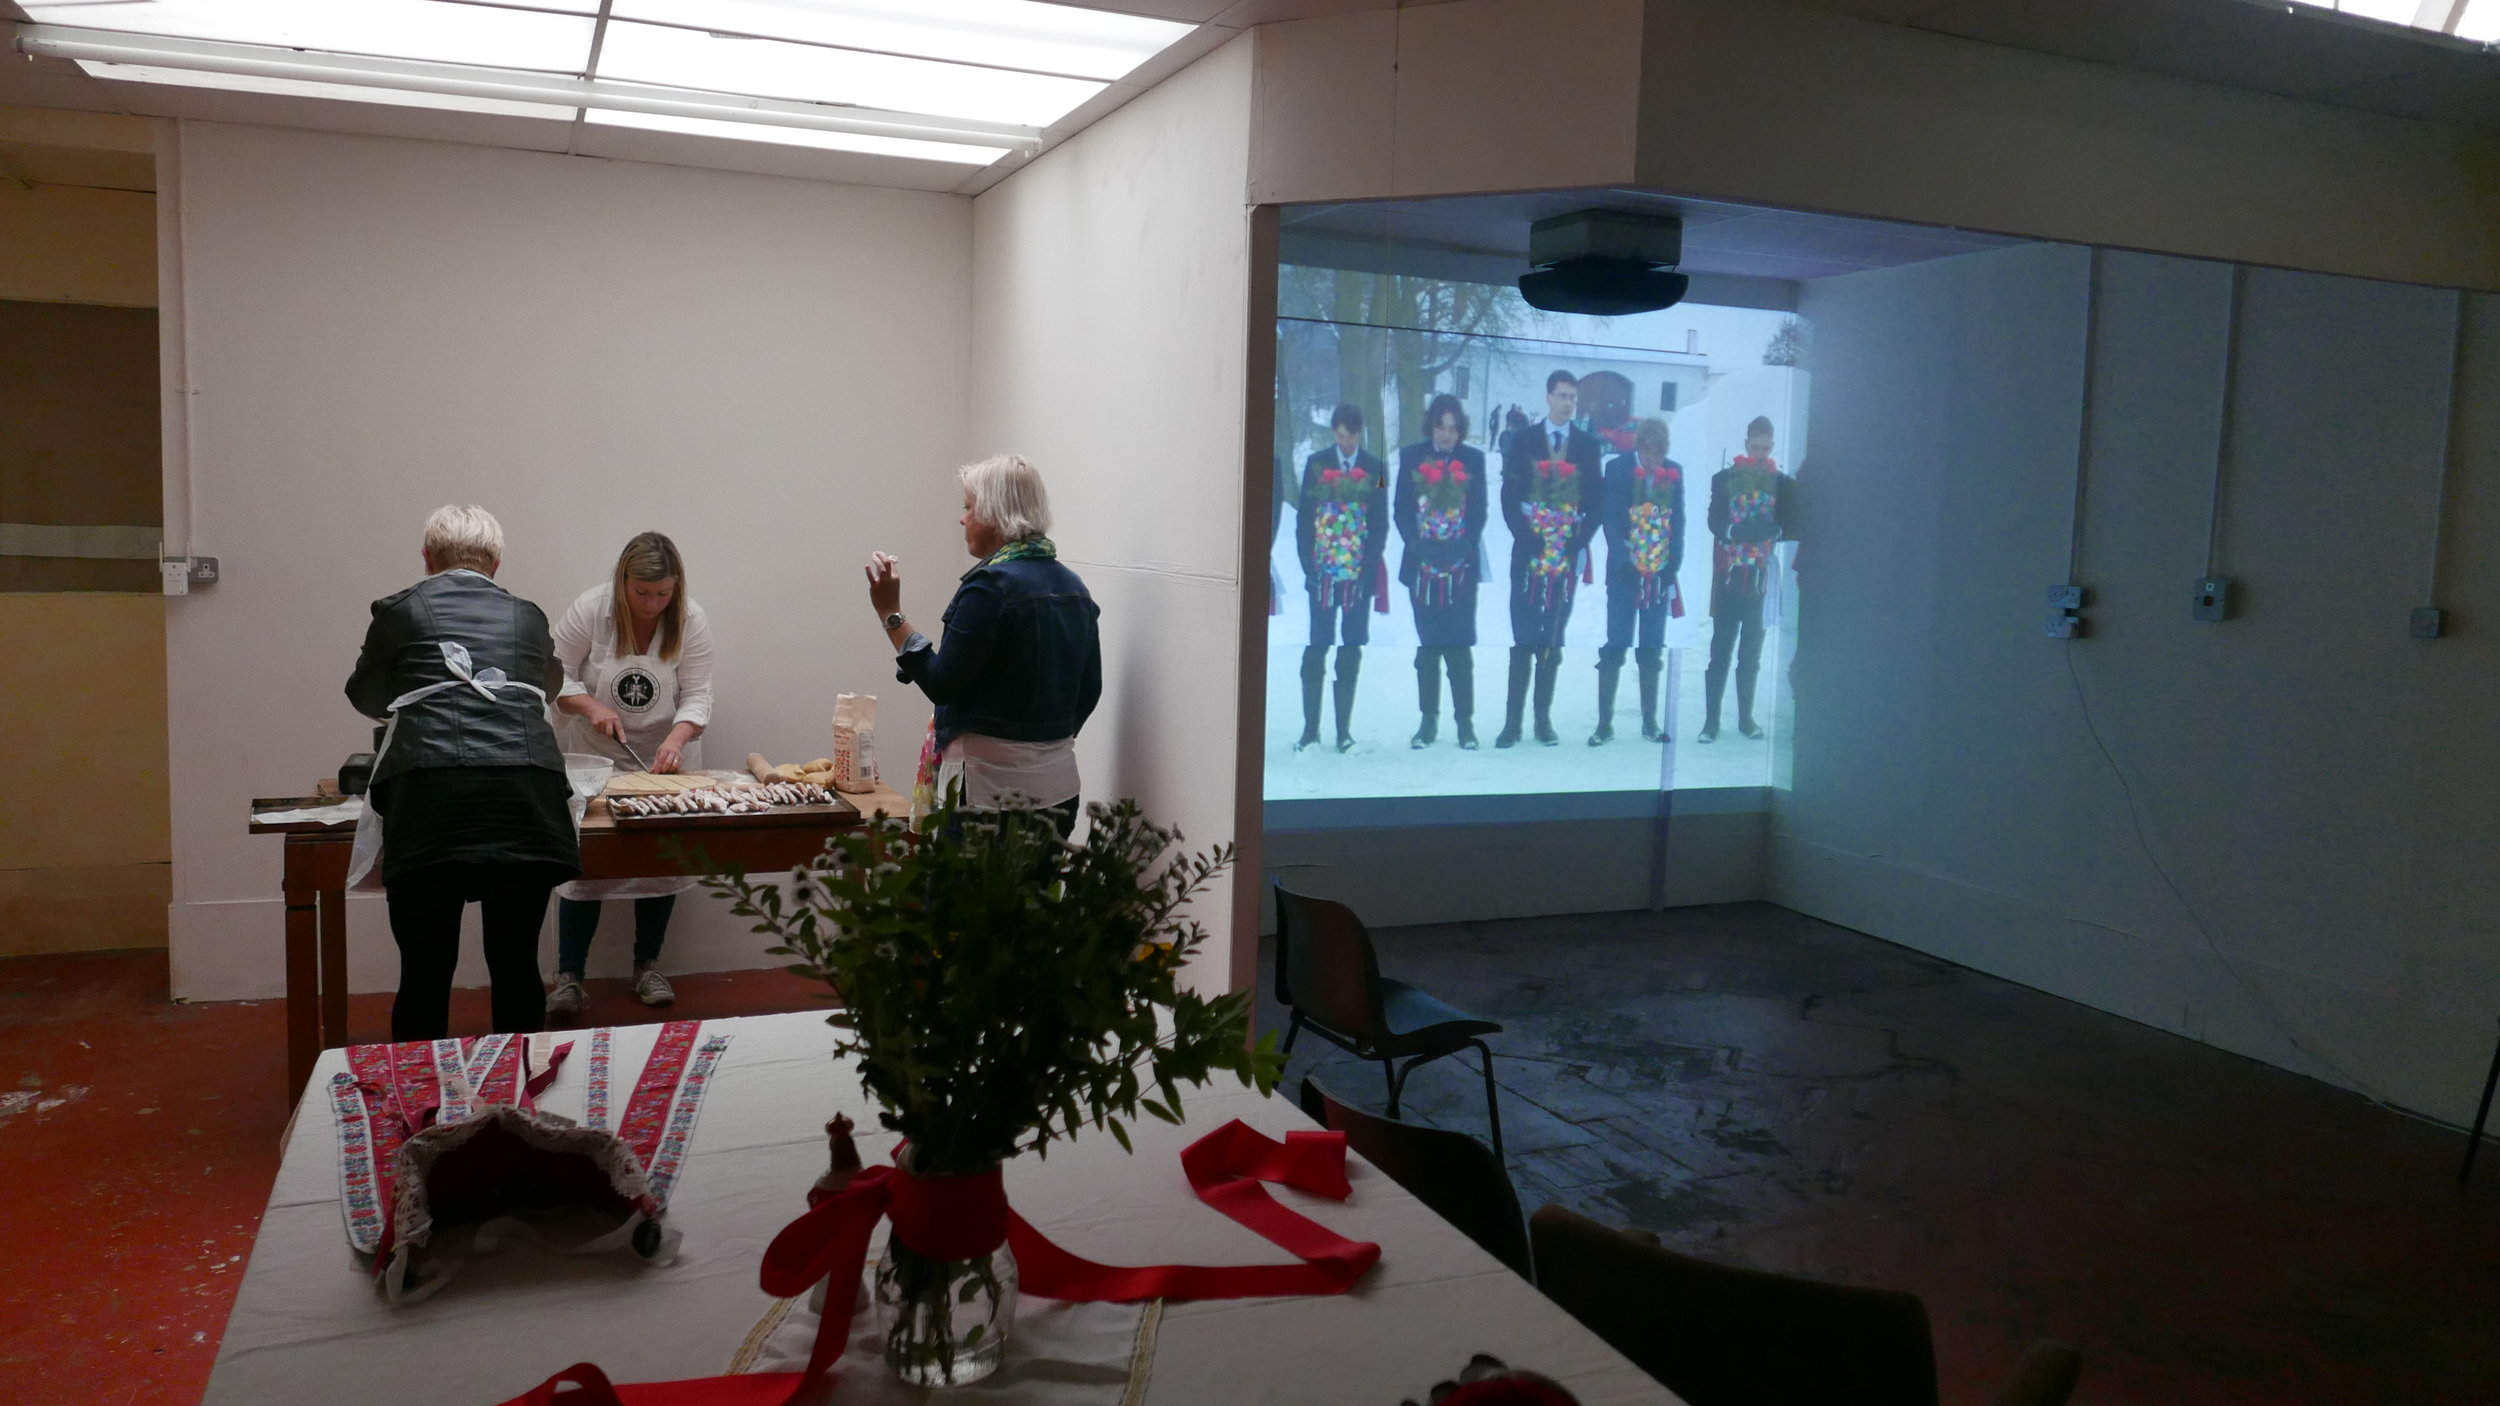 Films being shown in the Craft Room